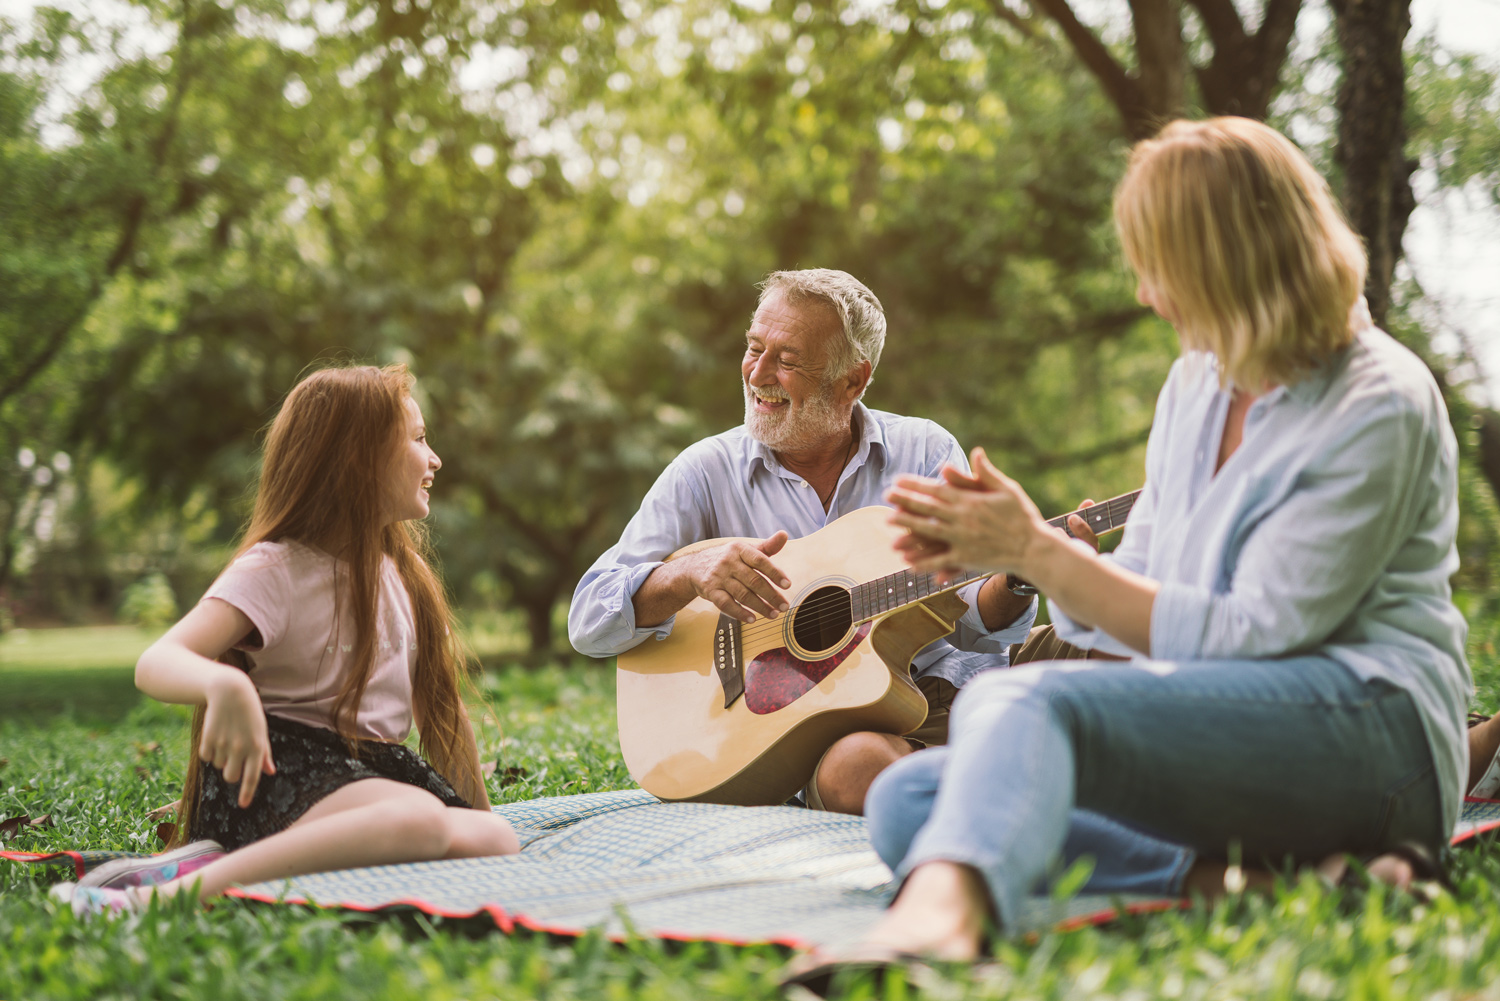 Happy-family-man-playing-guitar-wife-daughter.jpg